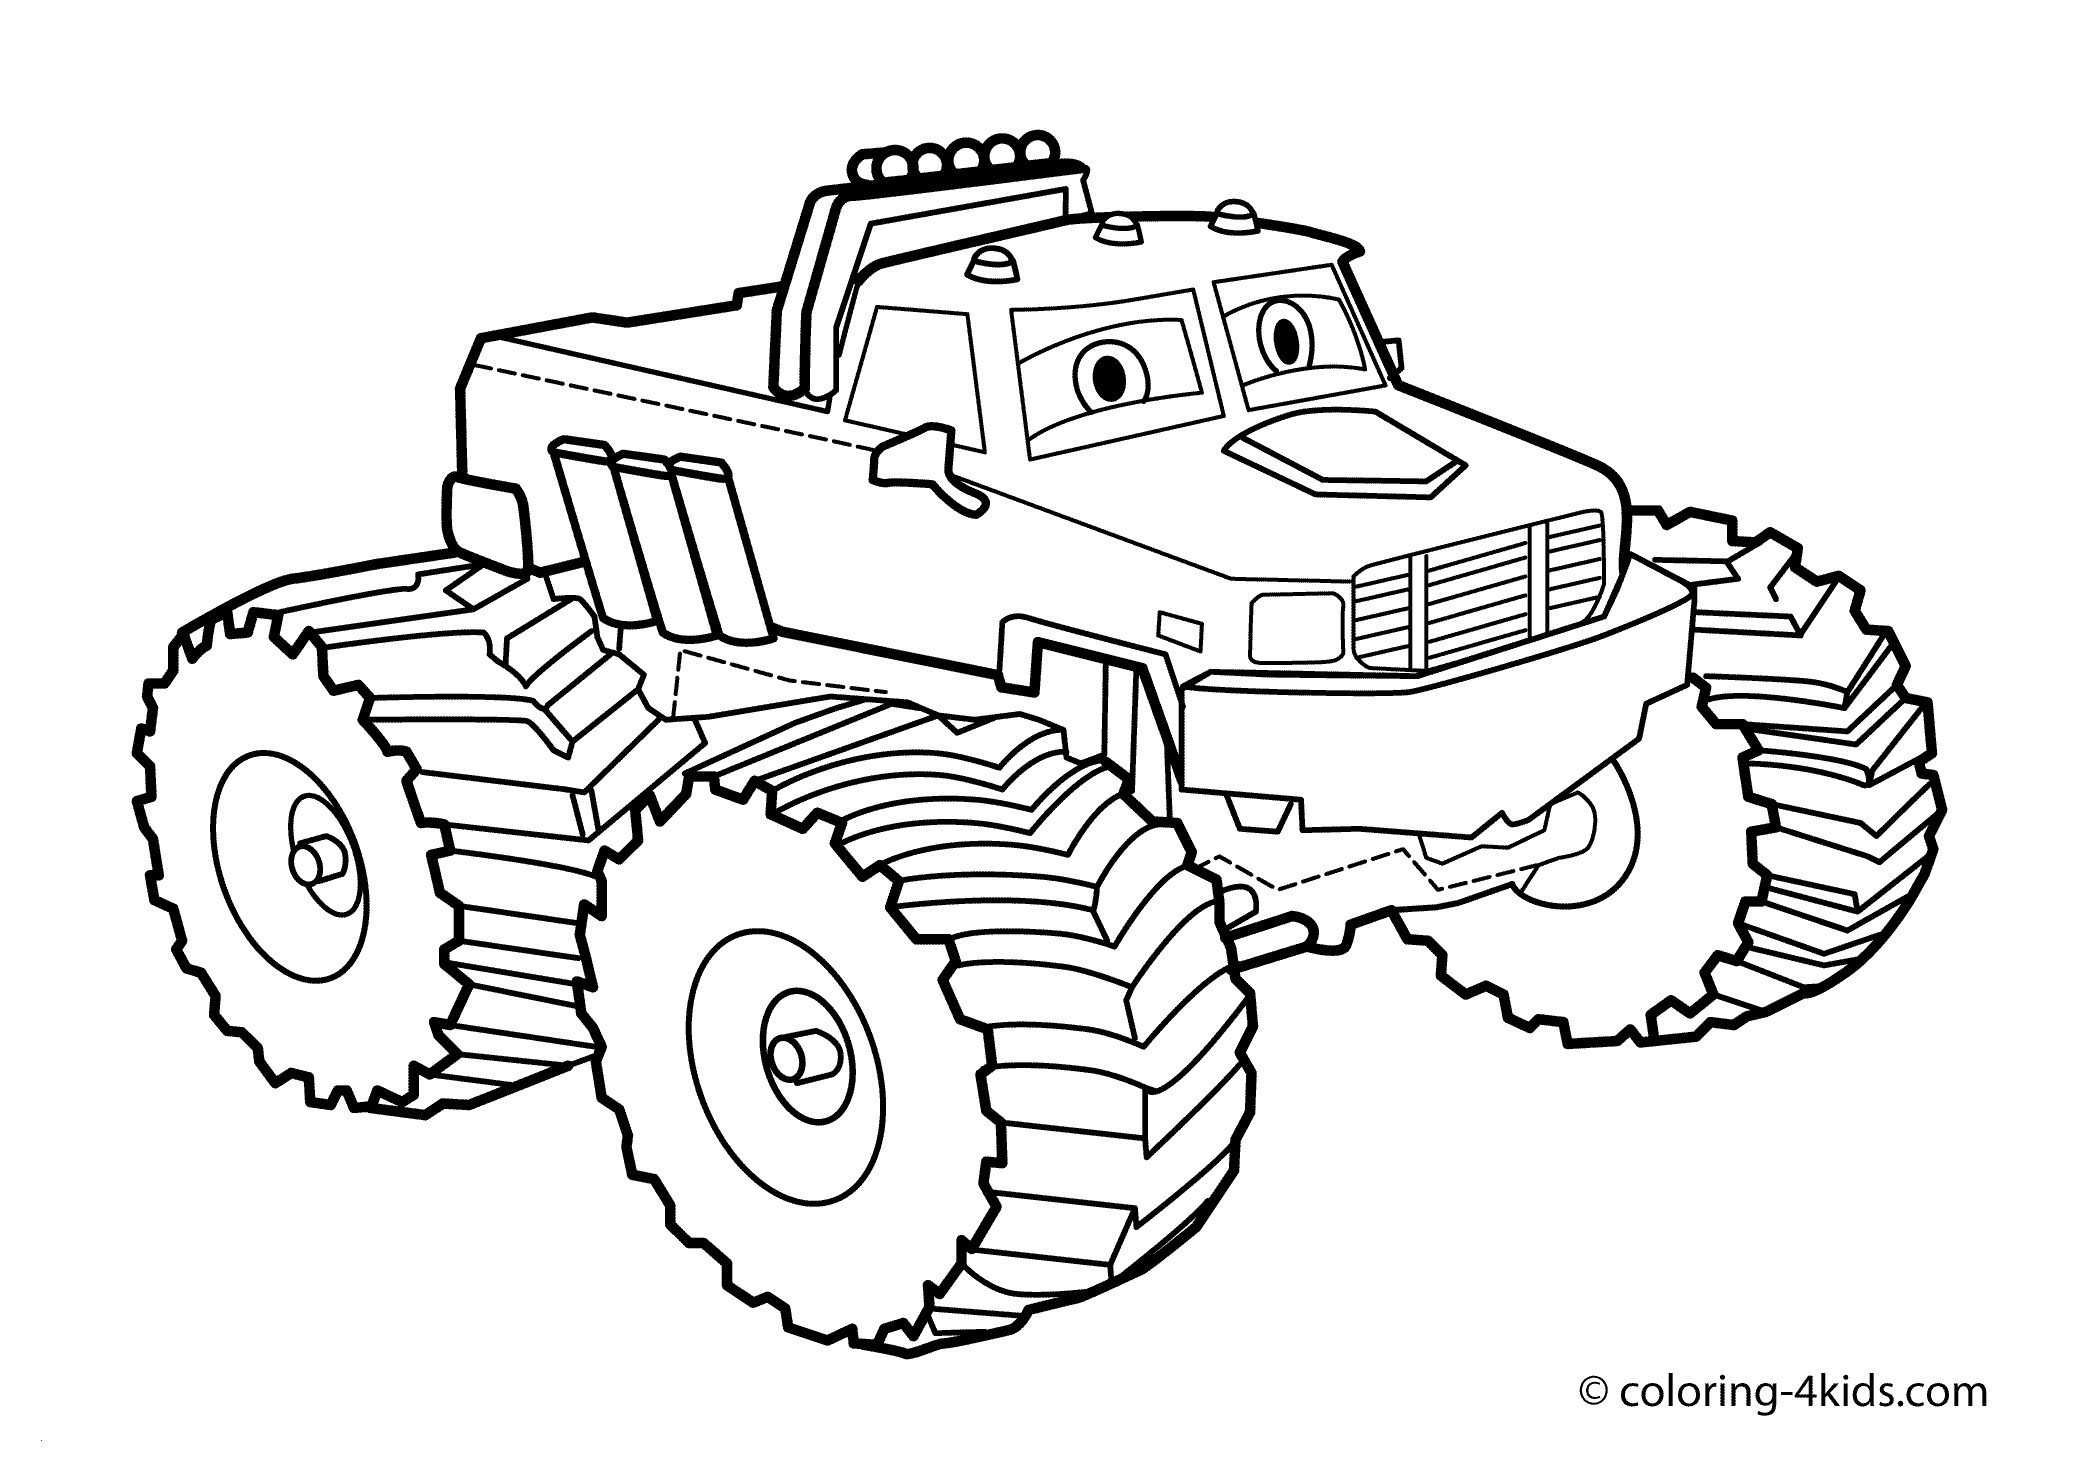 printable truck coloring pages Collection-Monster Truck Coloring Page for Kids Monster Truck Coloring Books Elegant Dino Trucks Ausmalbilder 4-b